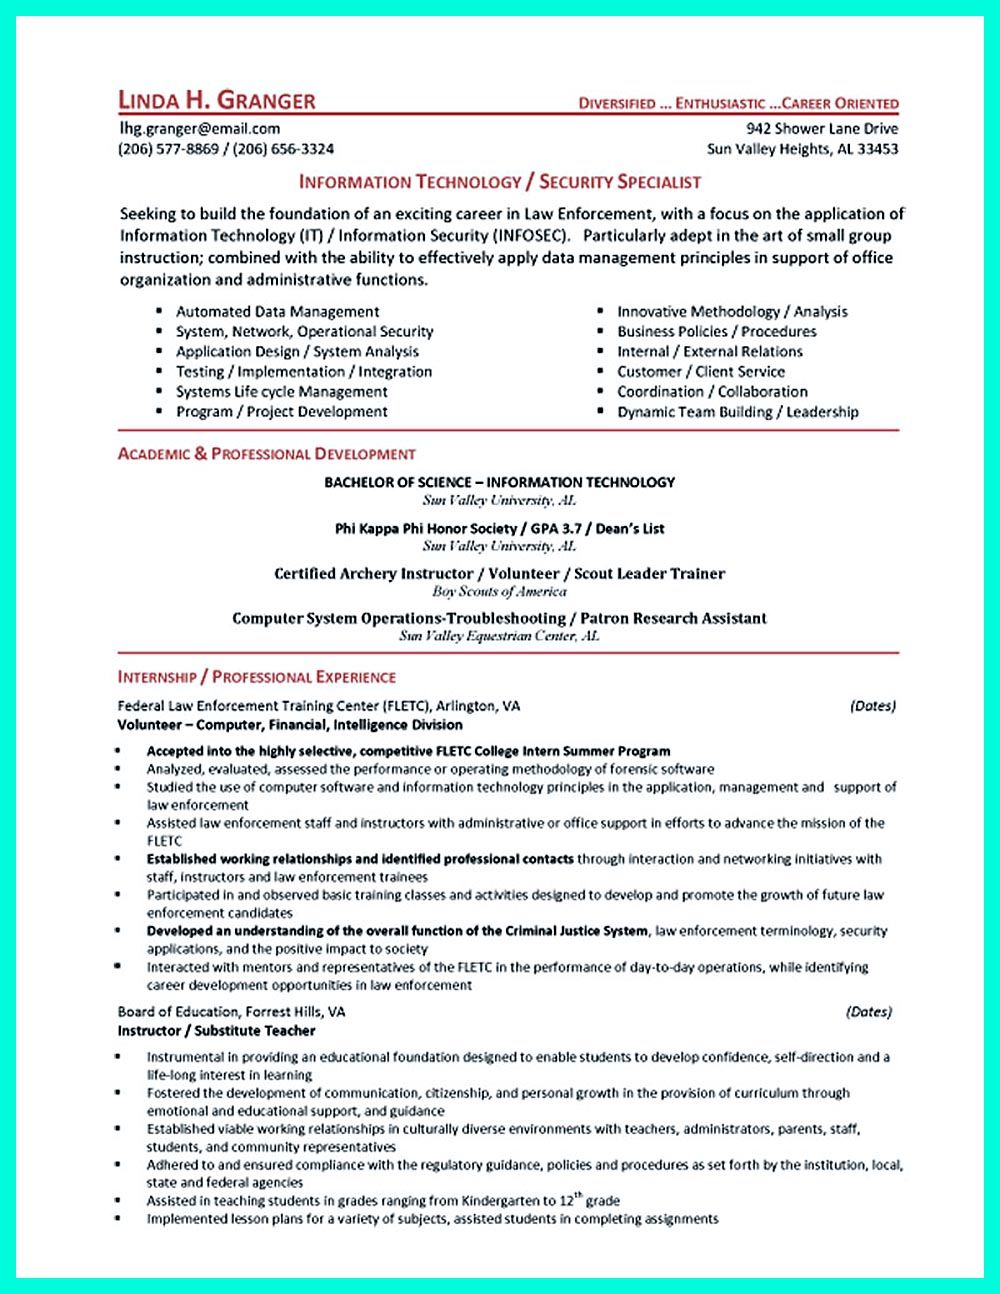 Cyber Security Resume Must Be Well Created To Get The Job Position  Cyber Security Resume